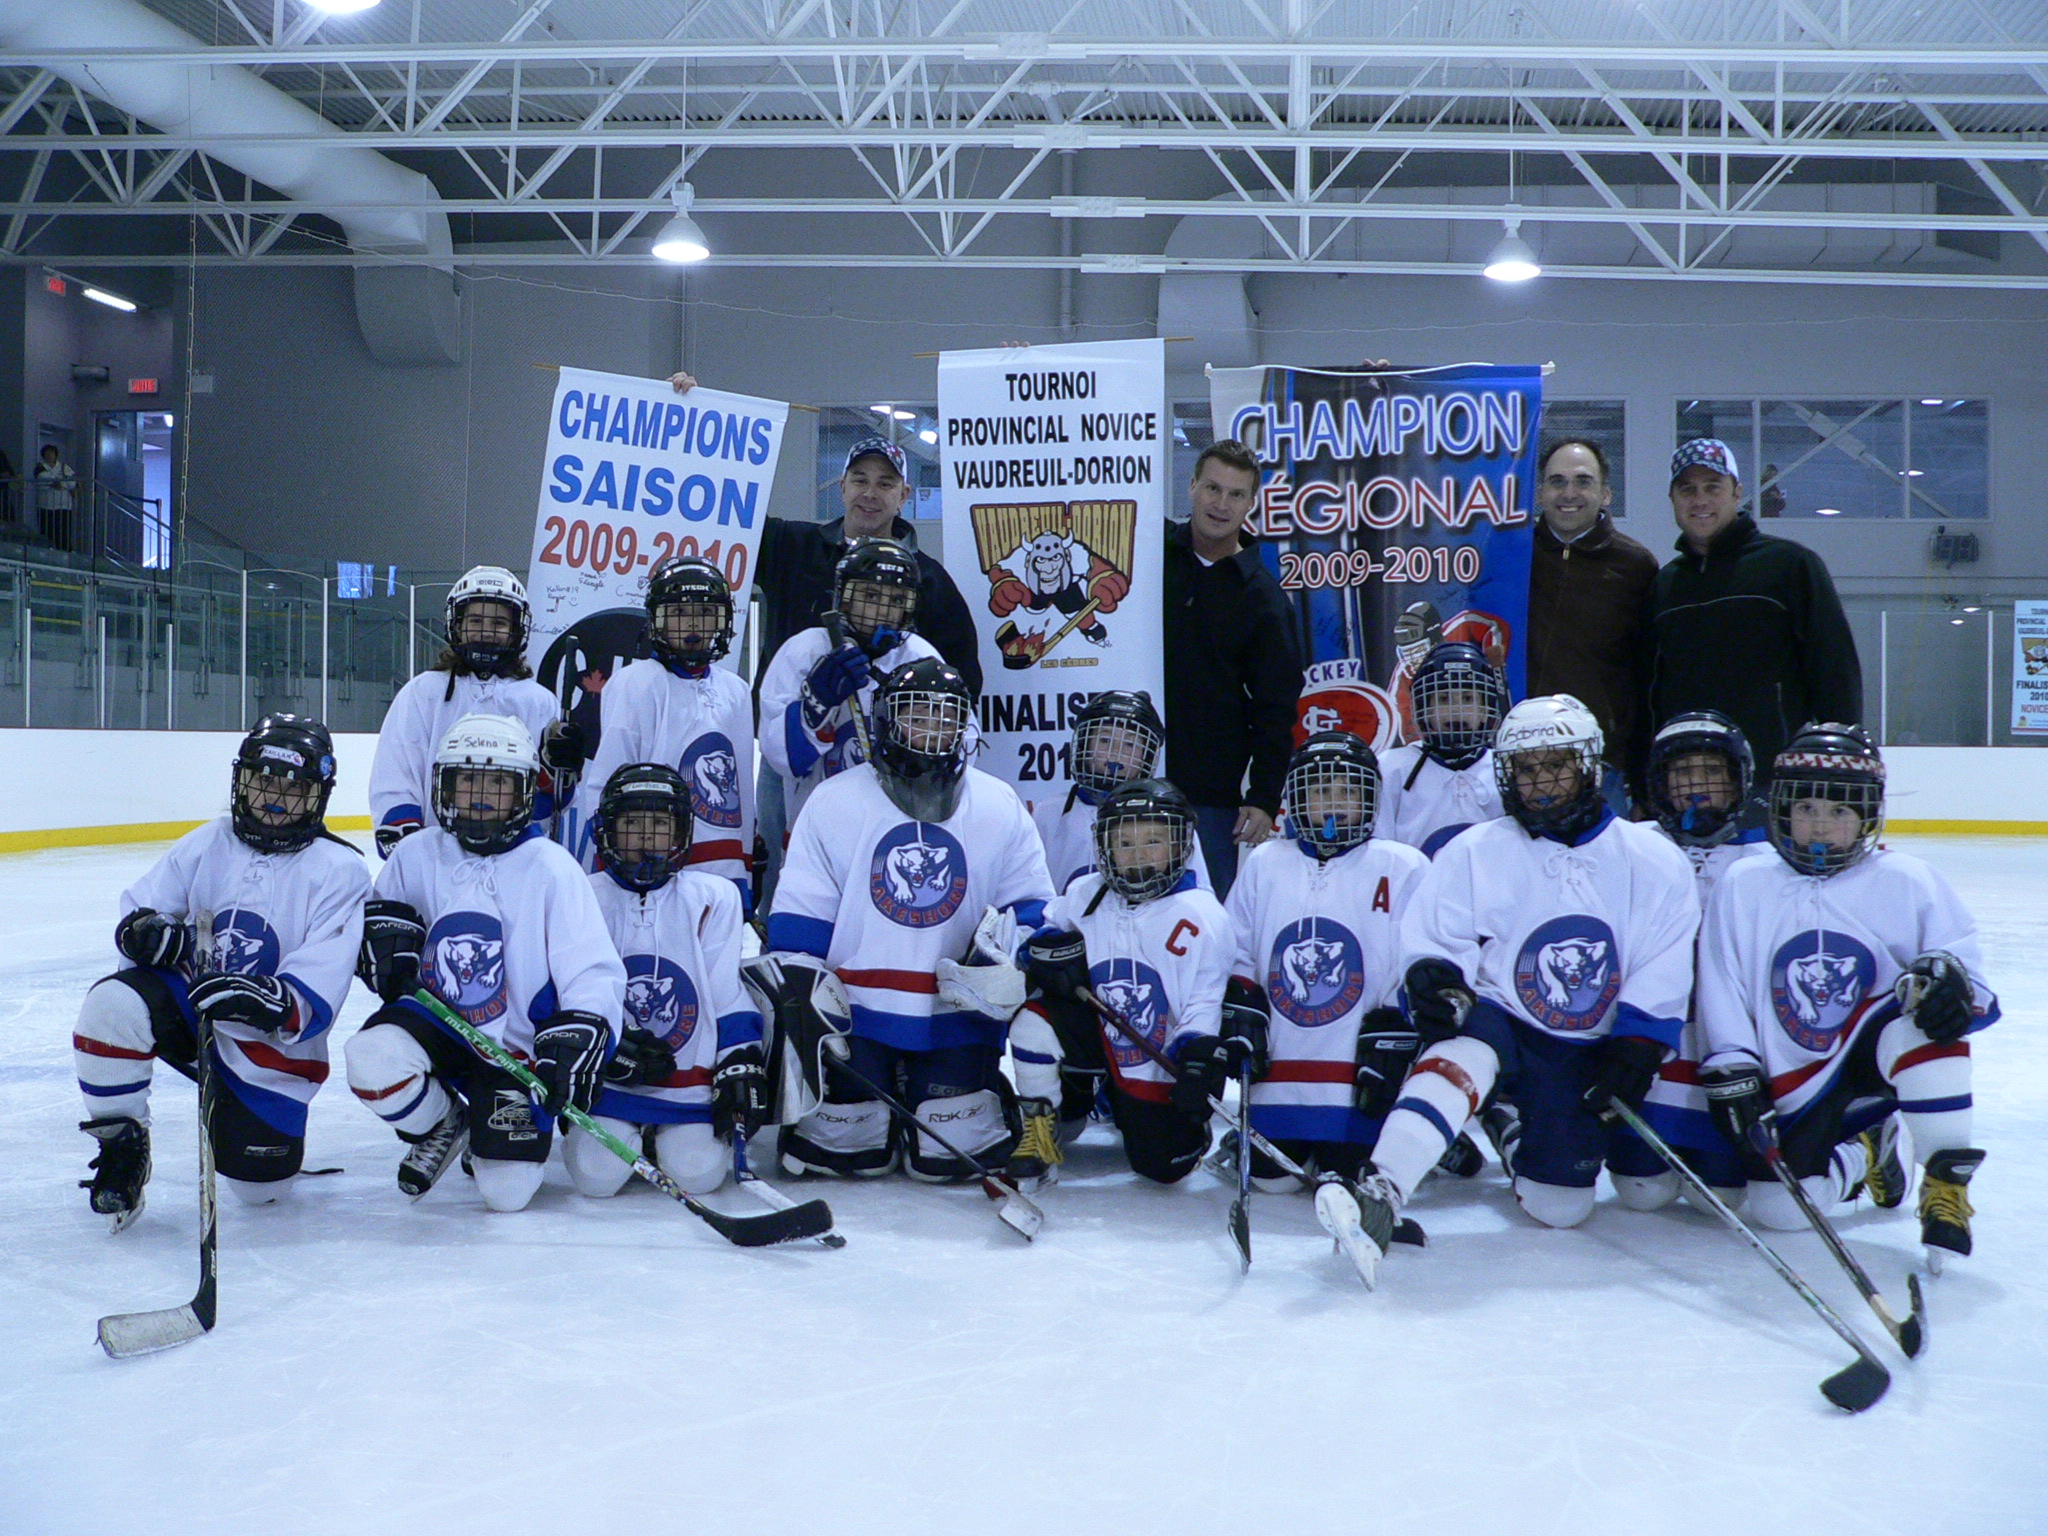 Association de hockey mineur de vaudreuil dorion for Club piscine vaudreuil dorion